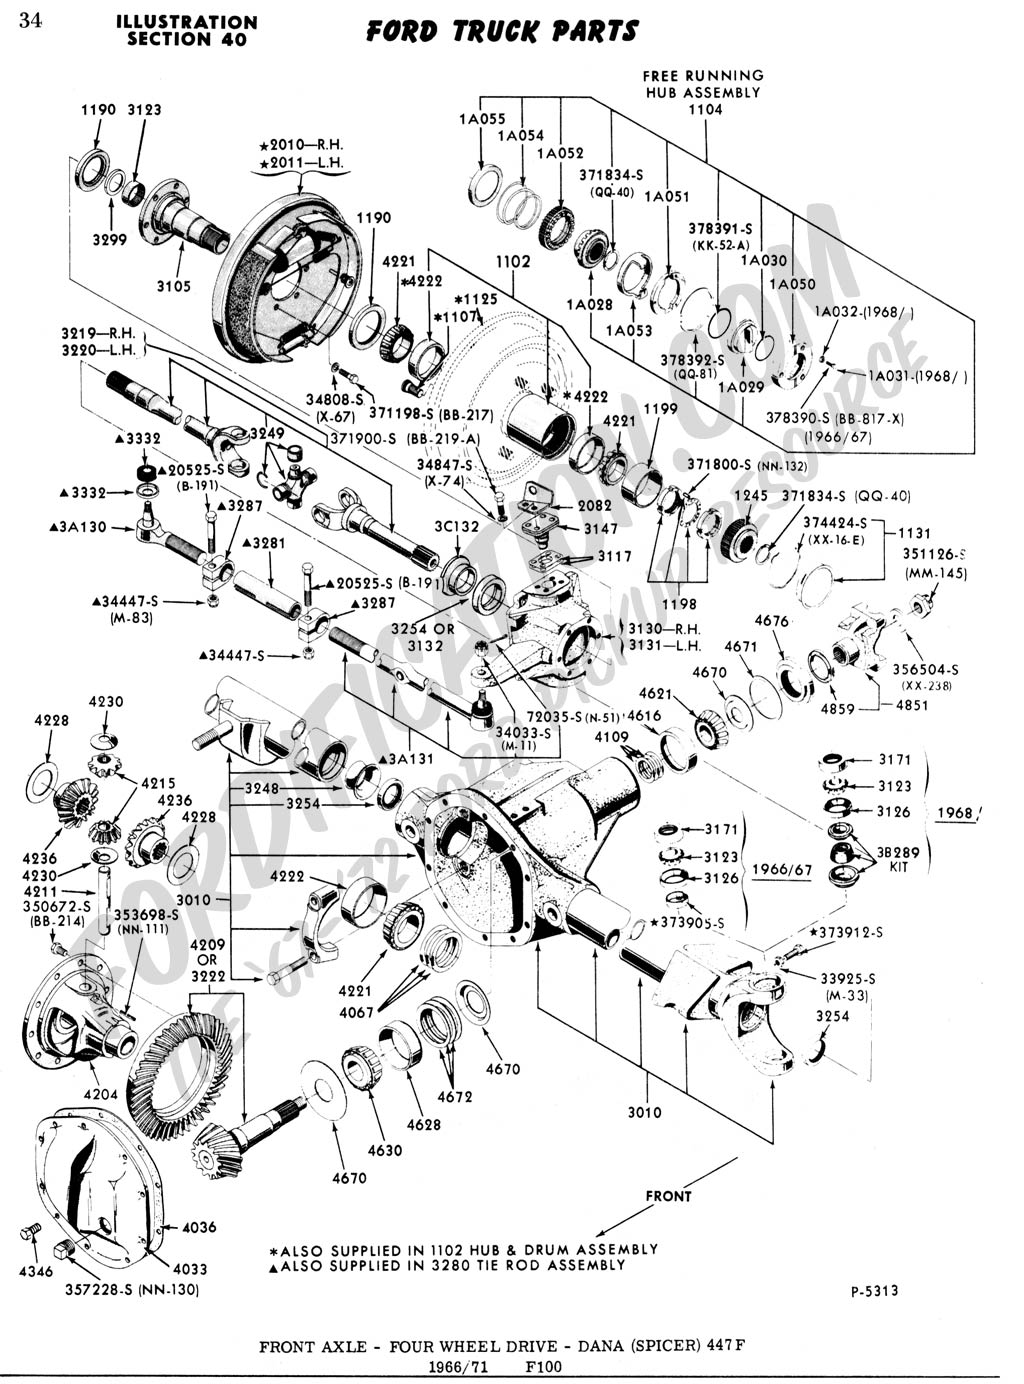 2000 f250 front axle diagram html